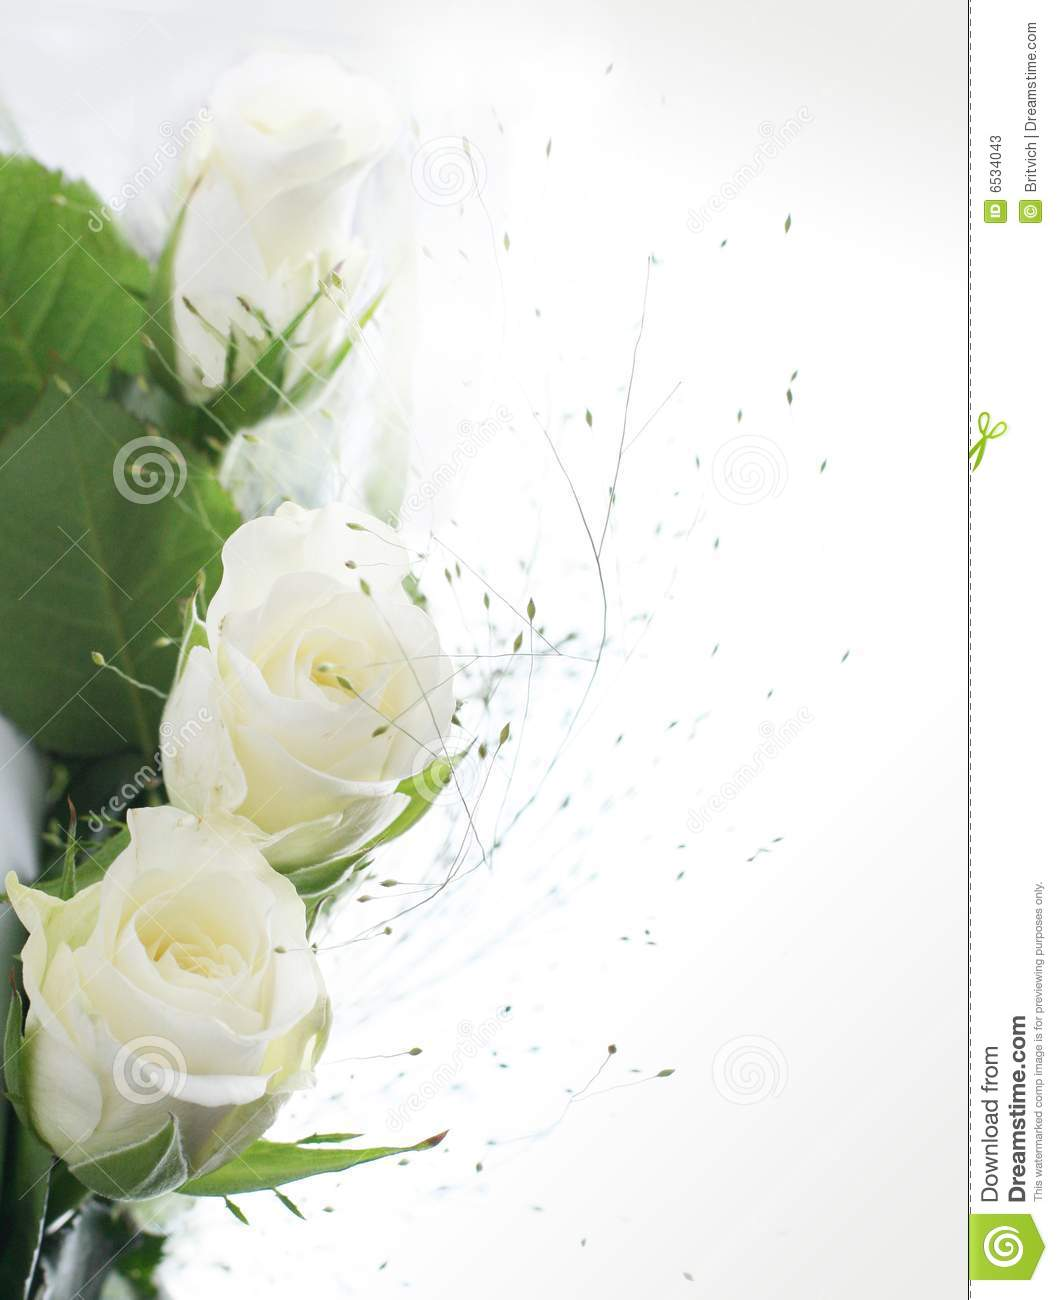 Frame Part With White Roses Stock Image - Image of floral, drip: 6534043